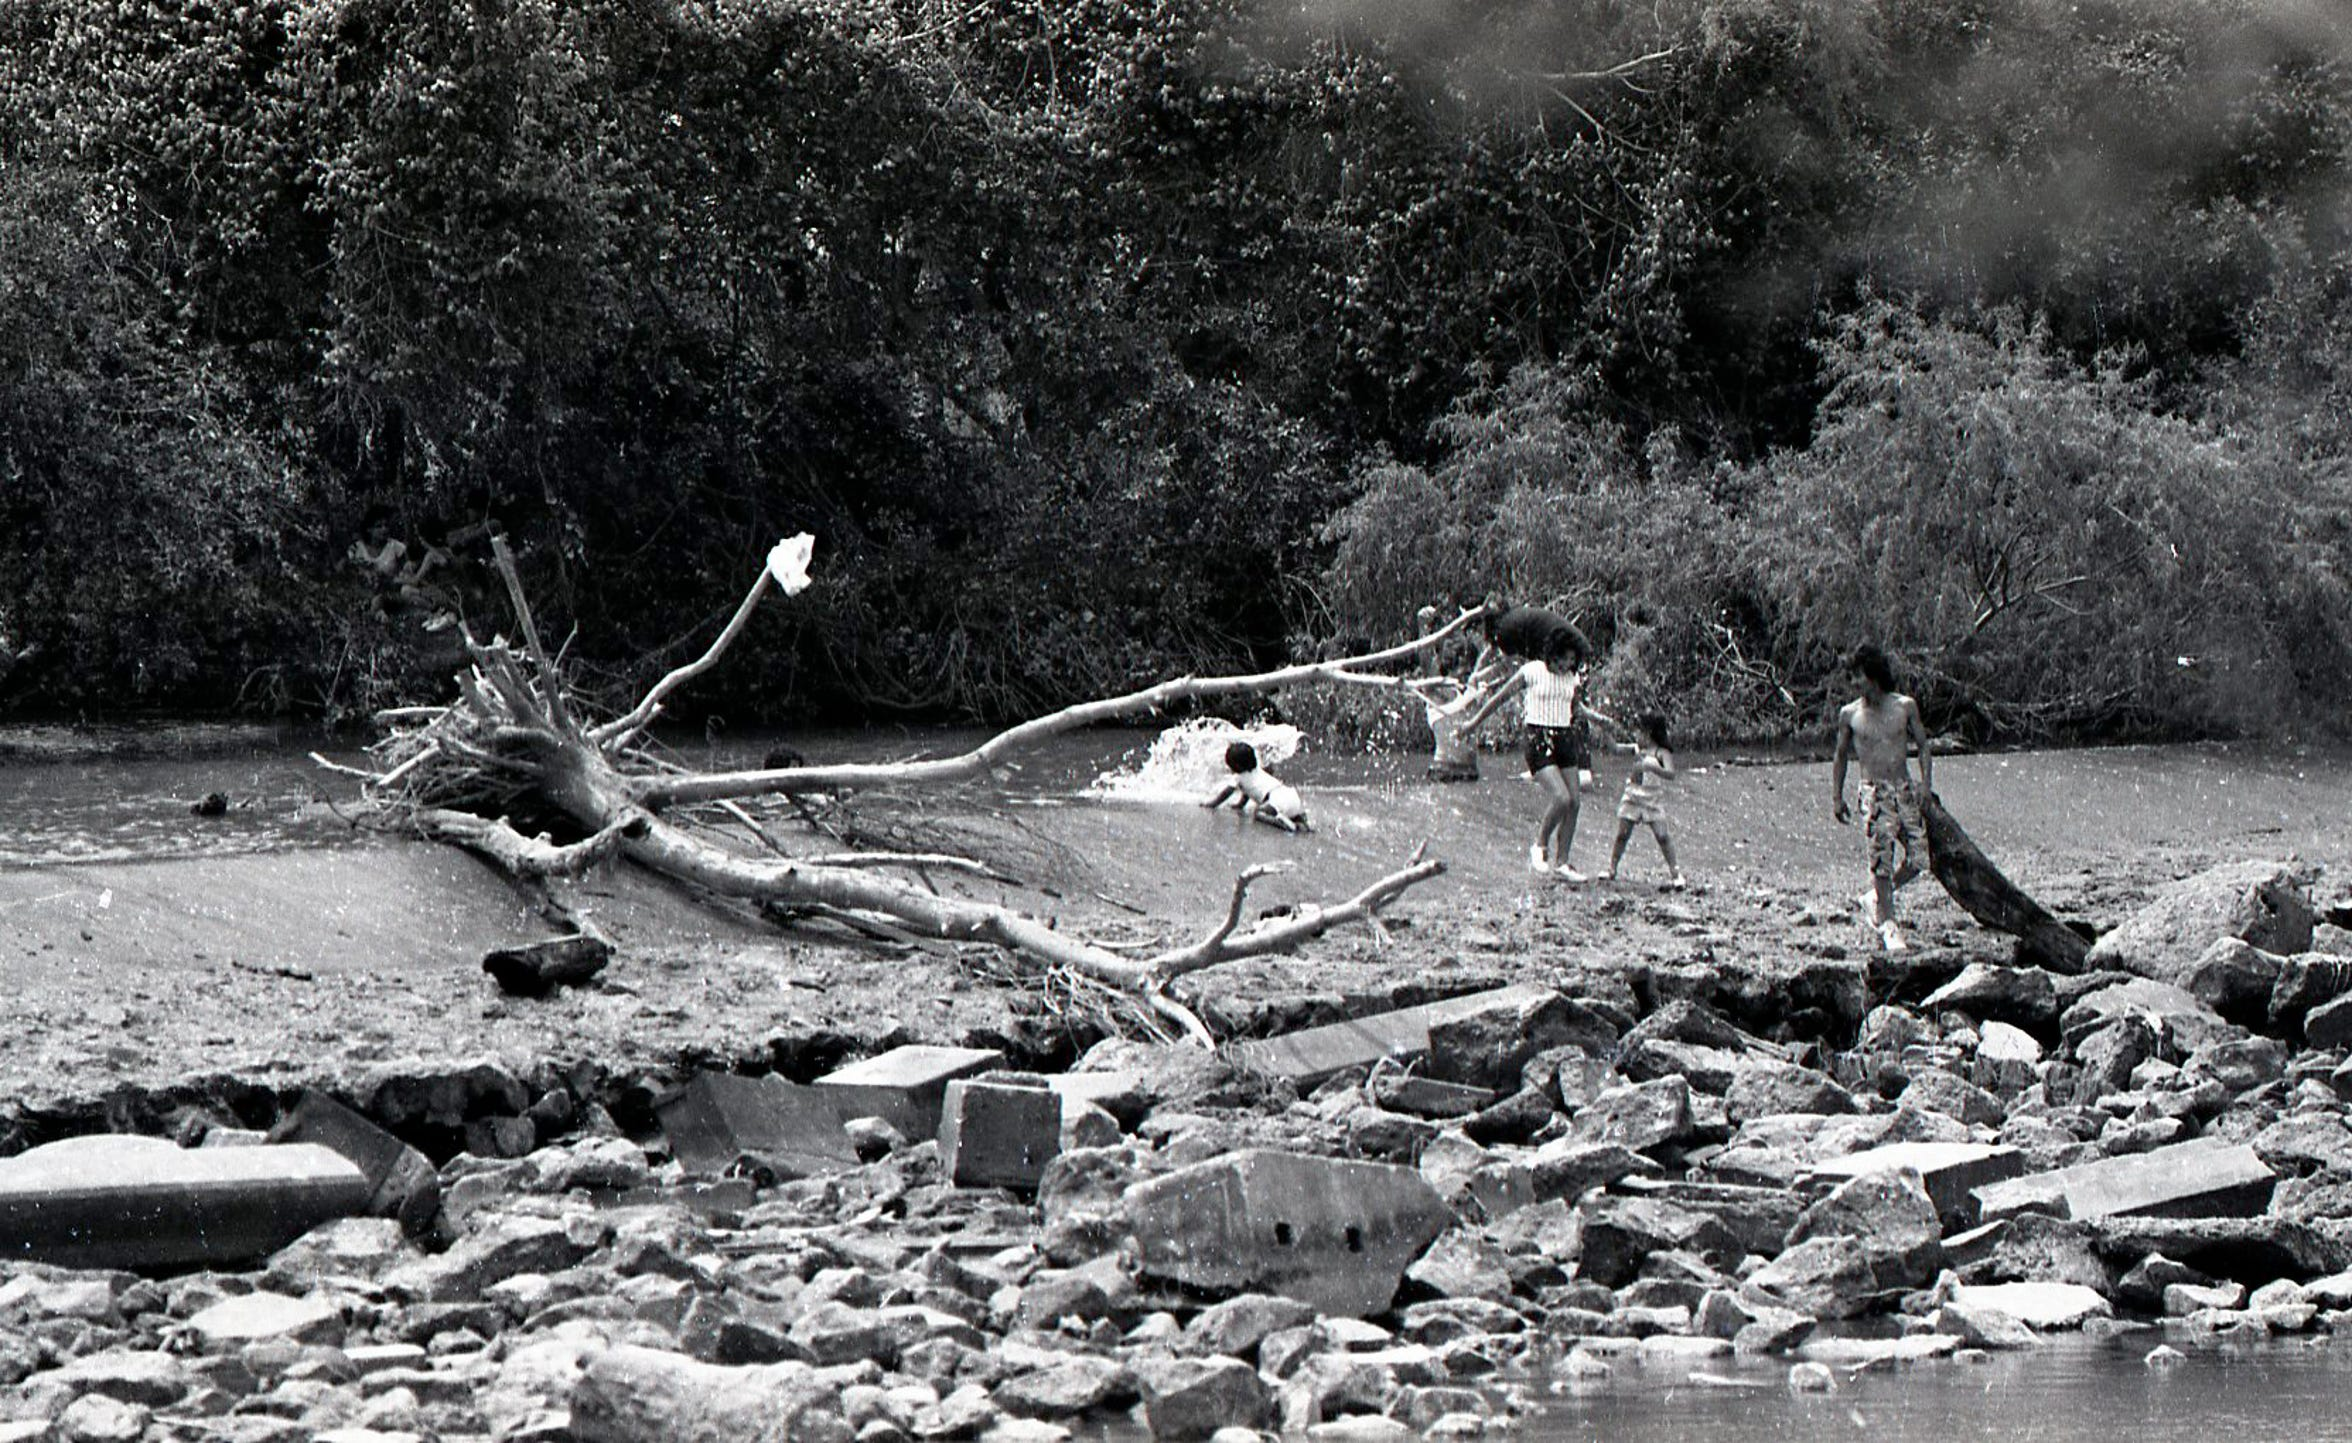 Swimmers cool off in the river at Nueces River Park in Corpus Christi on Easter Sunda, April 19, 1987.